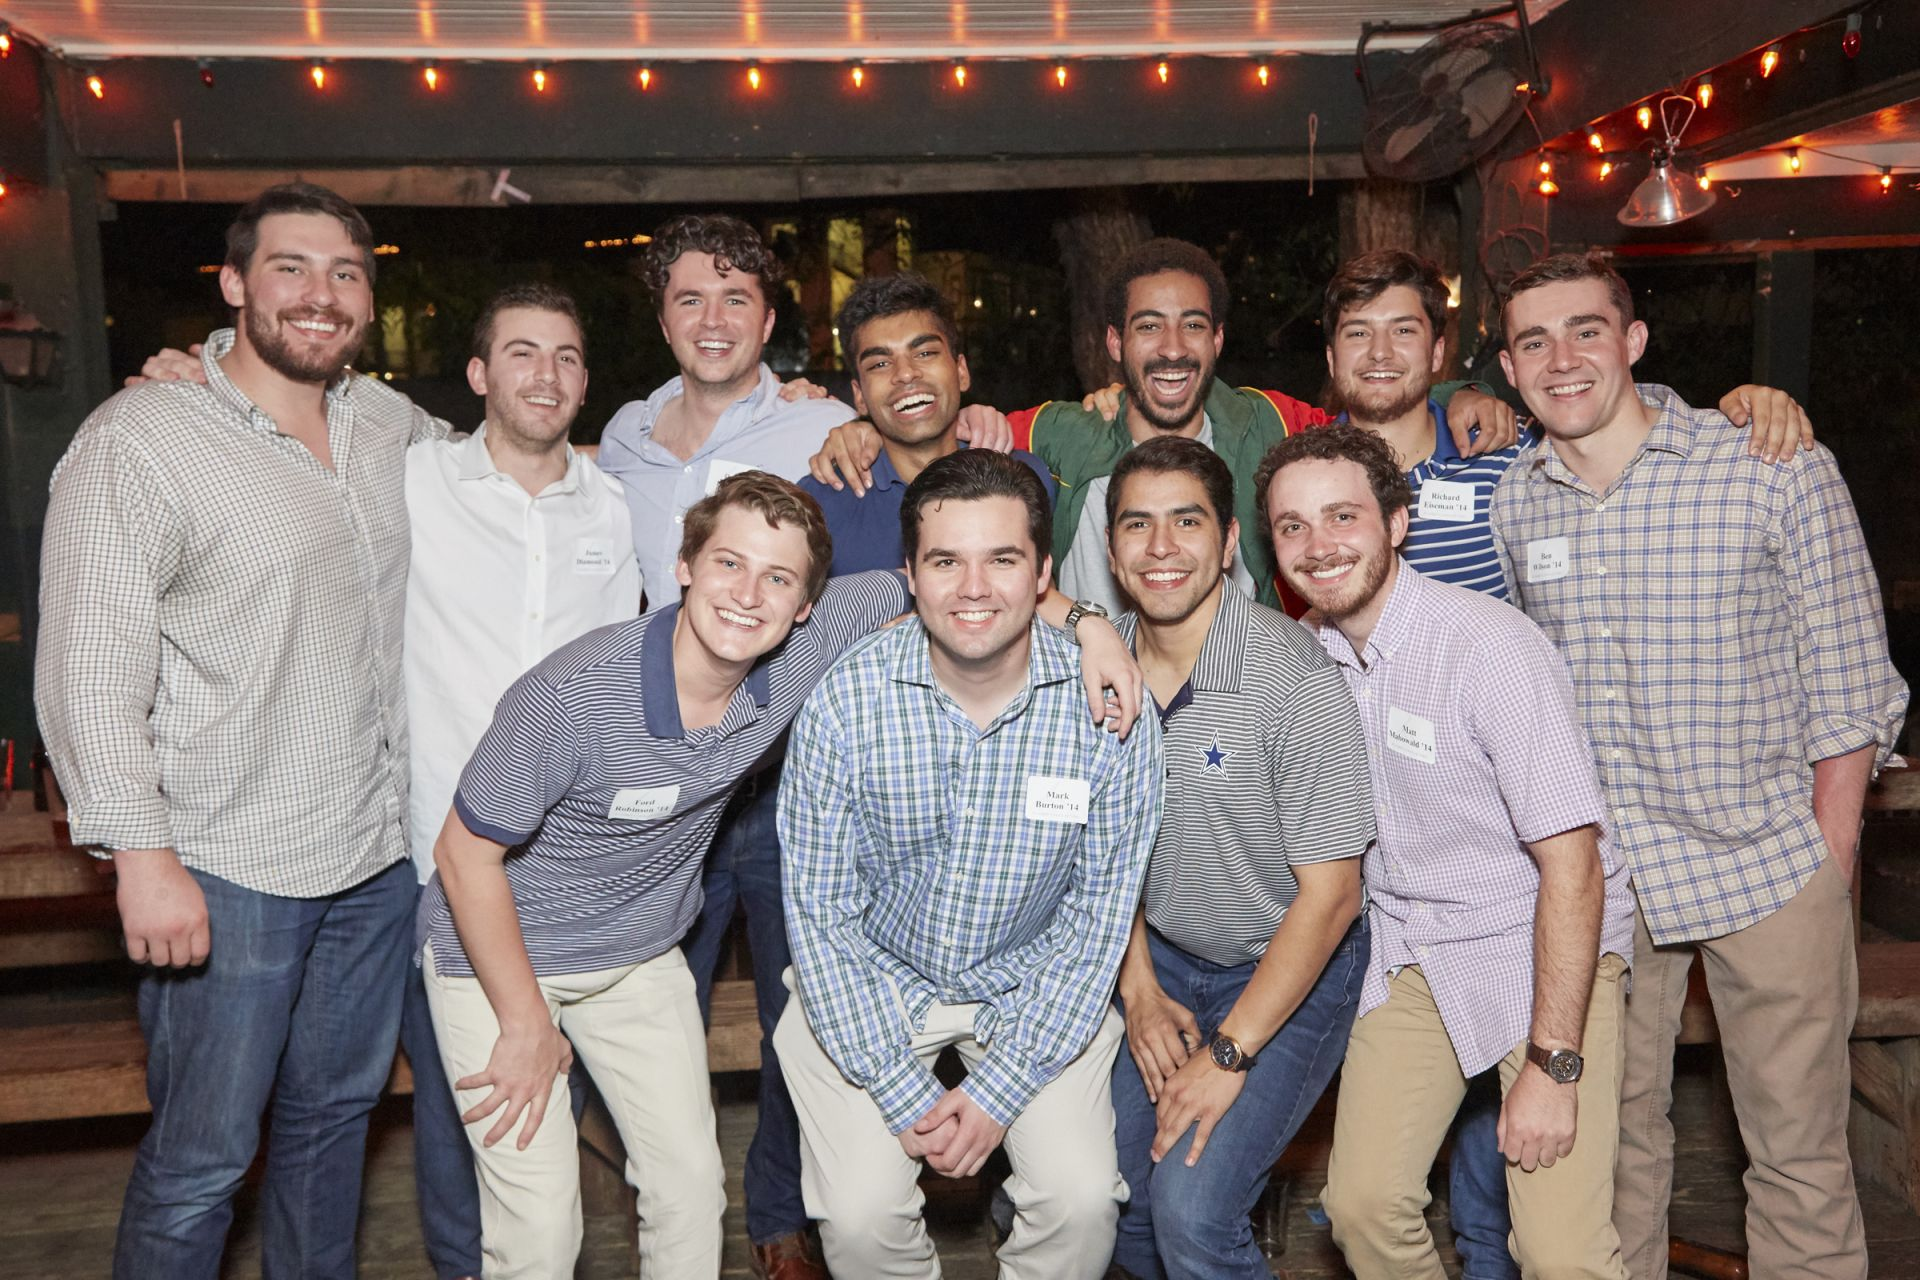 Members of the Class of 2014 reconnects at their 5th Reunion.